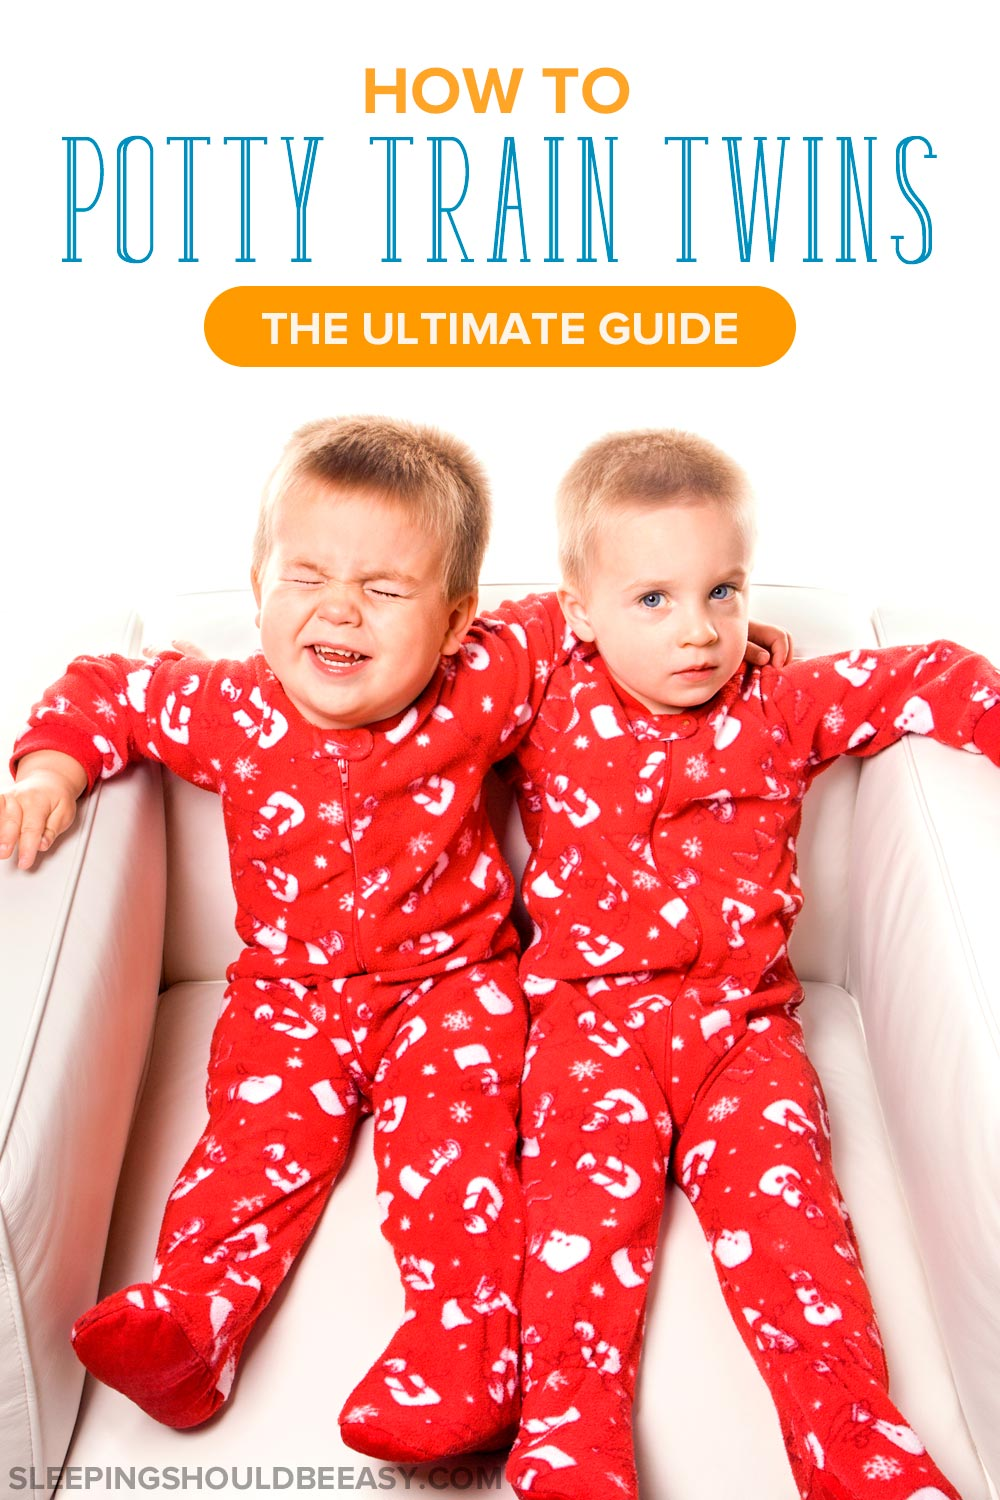 Twin boys in matching red pajamas, sitting on a white chair